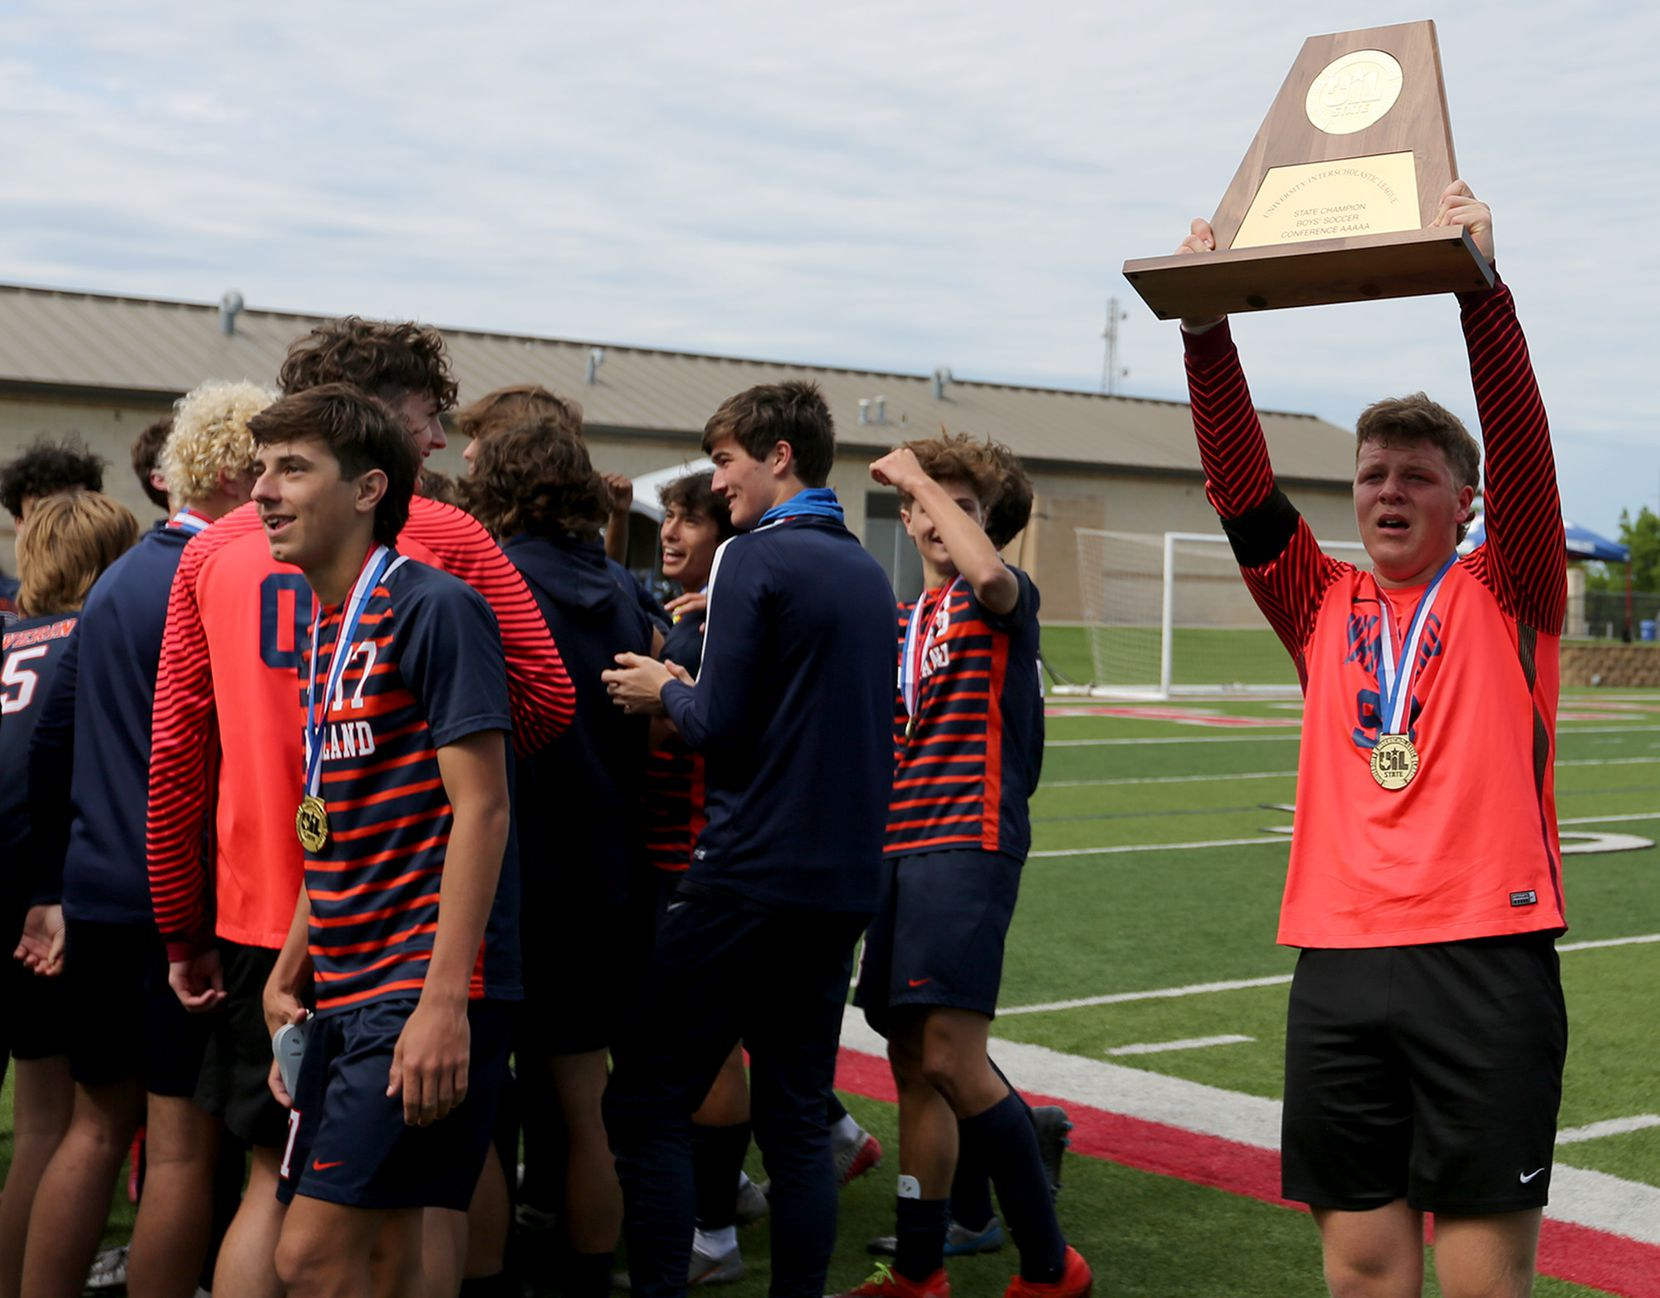 Frisco Wakeland's Connor Pettigrew (99) celebrates with teammates after their UIL 5A boys State championship soccer game against Humble Kingwood Park at Birkelbach Field on April 17, 2021 in Georgetown, Texas. Frisco Wakeland won 3-2.